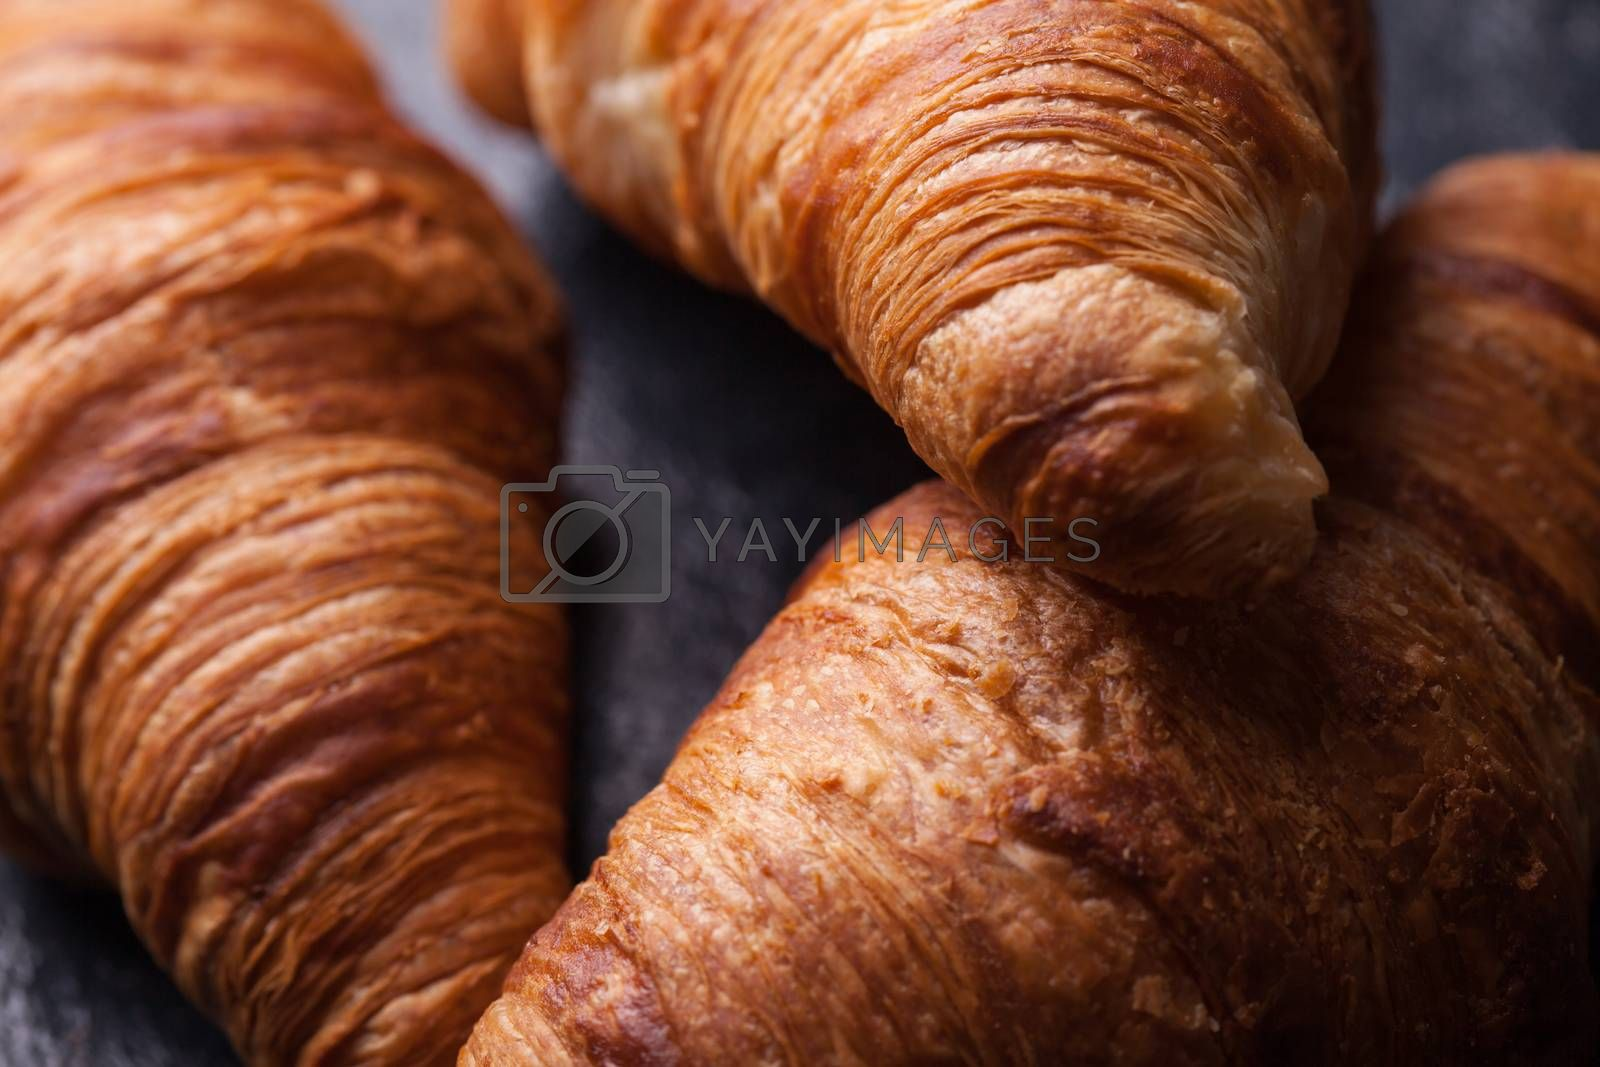 Tasty french croissants on a black wooden table by DCStudio